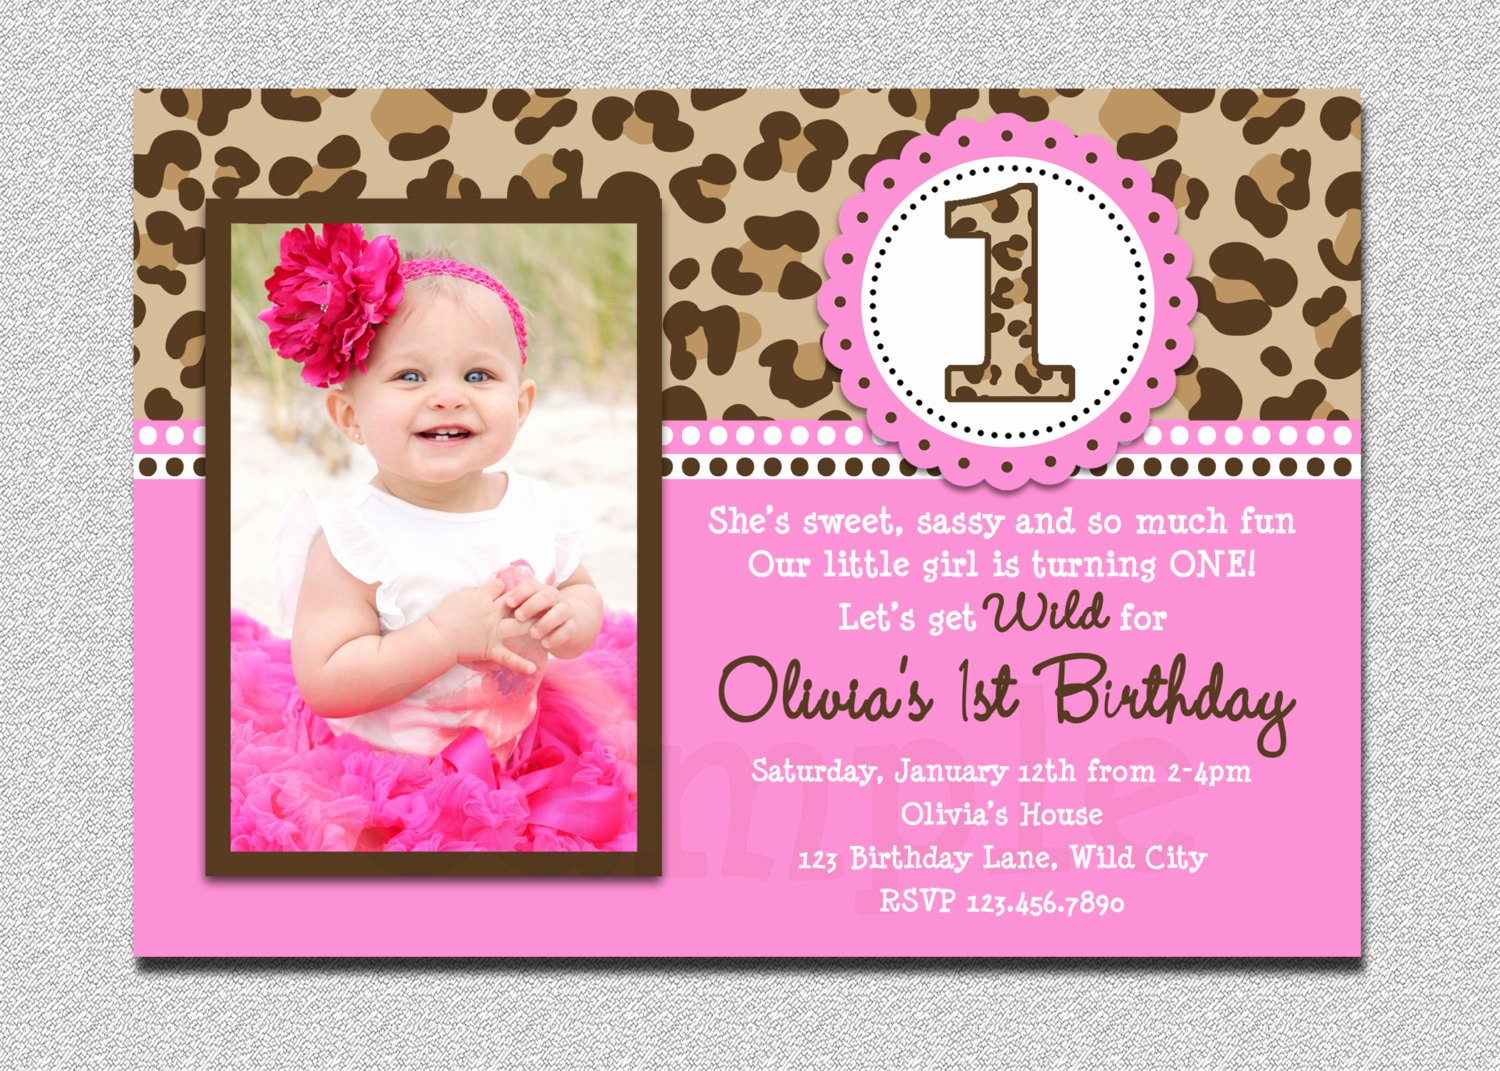 First Birthday Invitation Template Free Inspirational Free Printable 1st Birthday Invitations Girl – Free